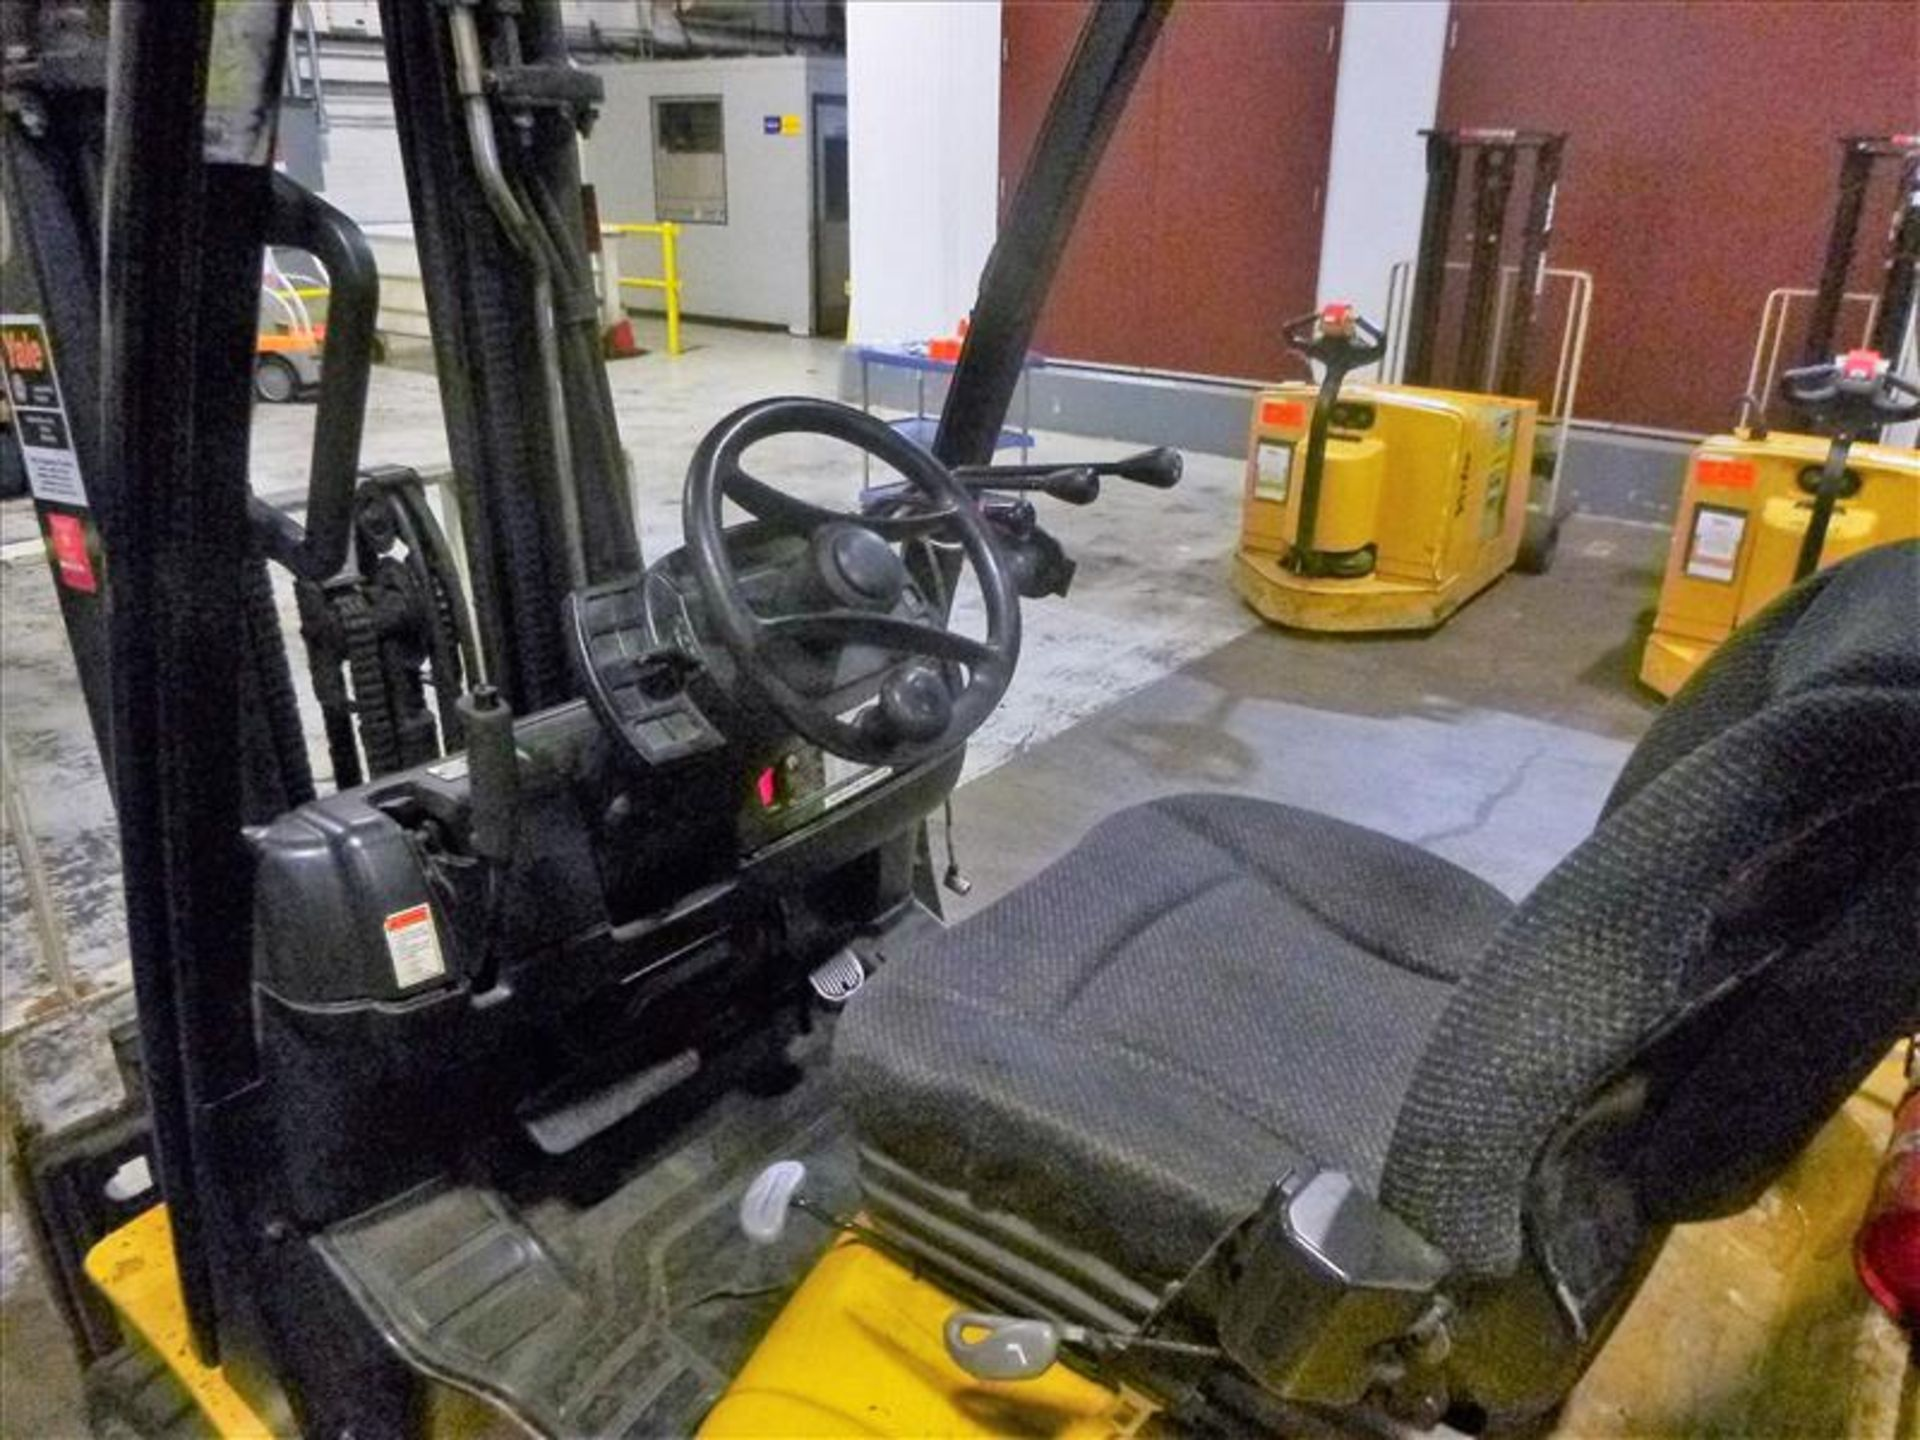 Lot 2007 - Yale fork lift truck, mod. GLC060VXNSEE085, ser. no. A910V14300G, LPG, 5500 lbs cap., 181 in. lift